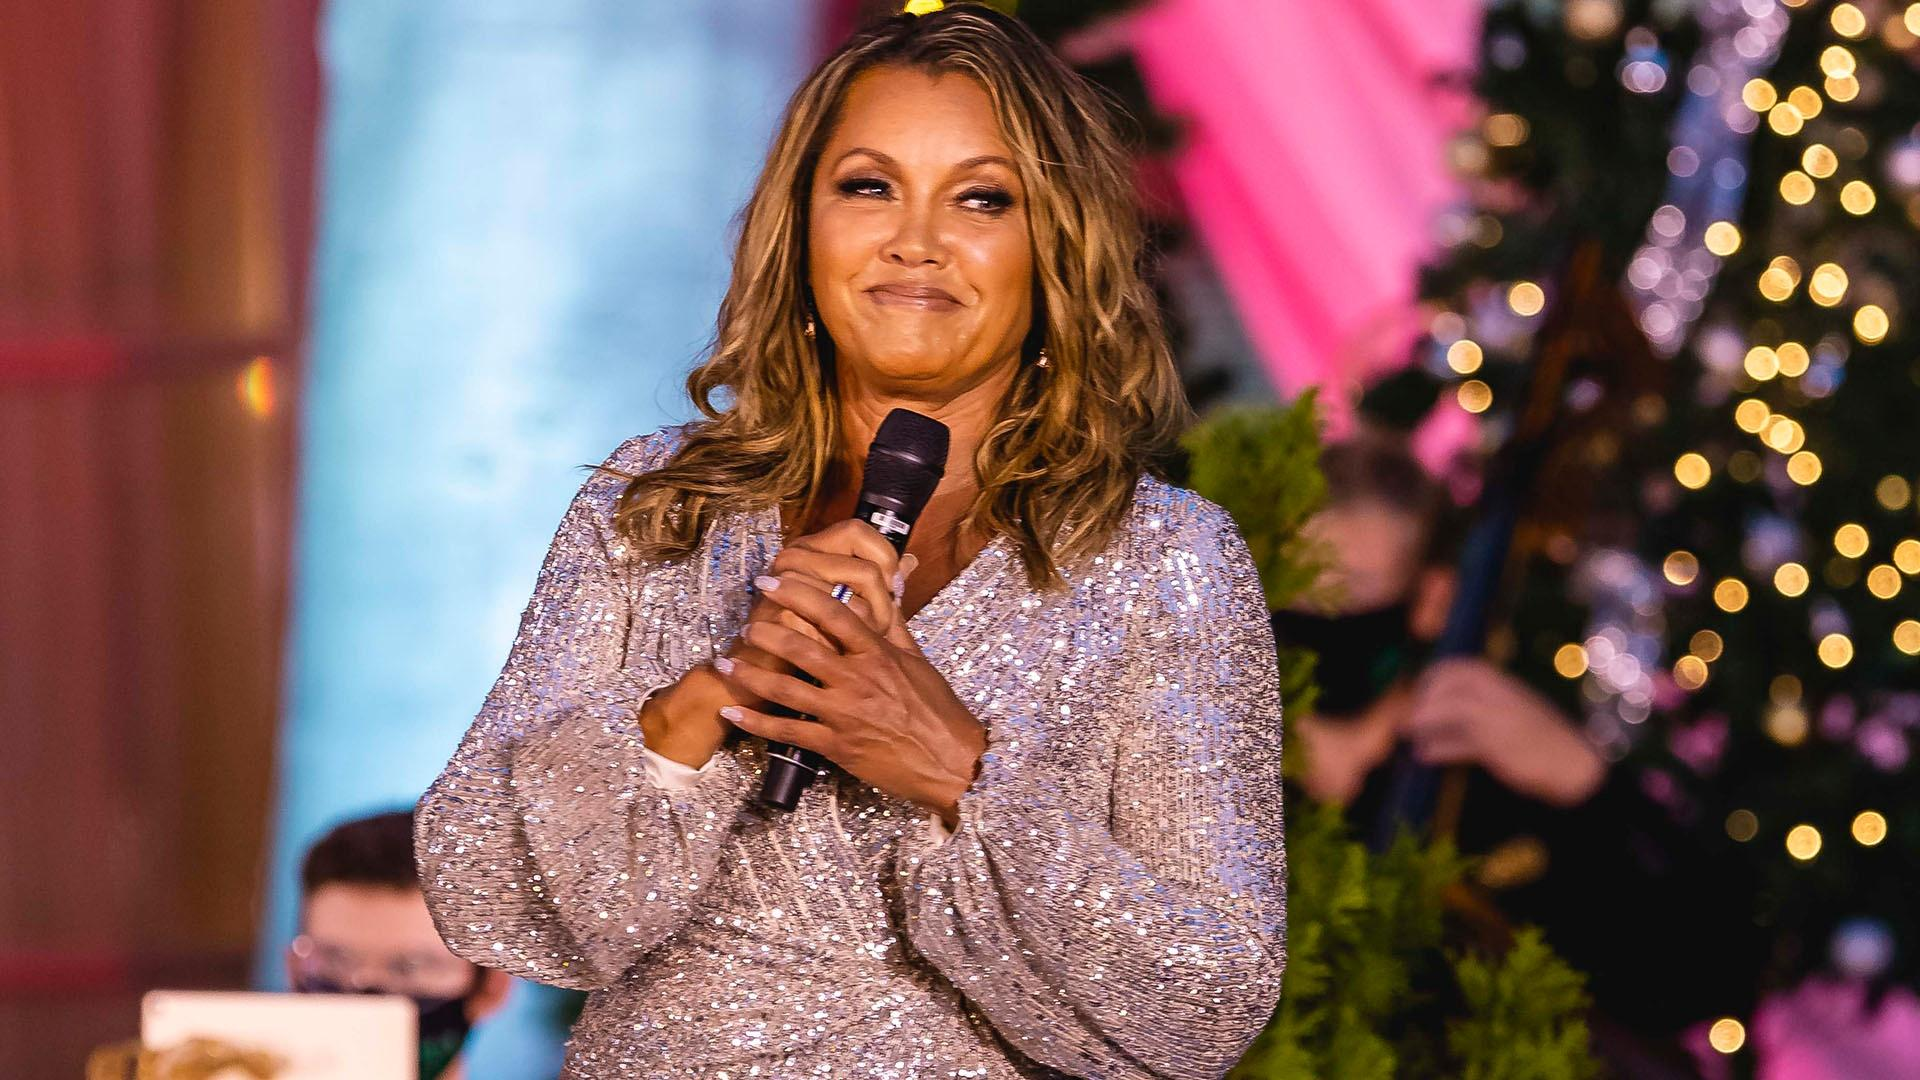 Christmas In Dc Pbs Specials 2021 Ella Wishes You A Swinging Christmas With Vanessa Williams Pbs